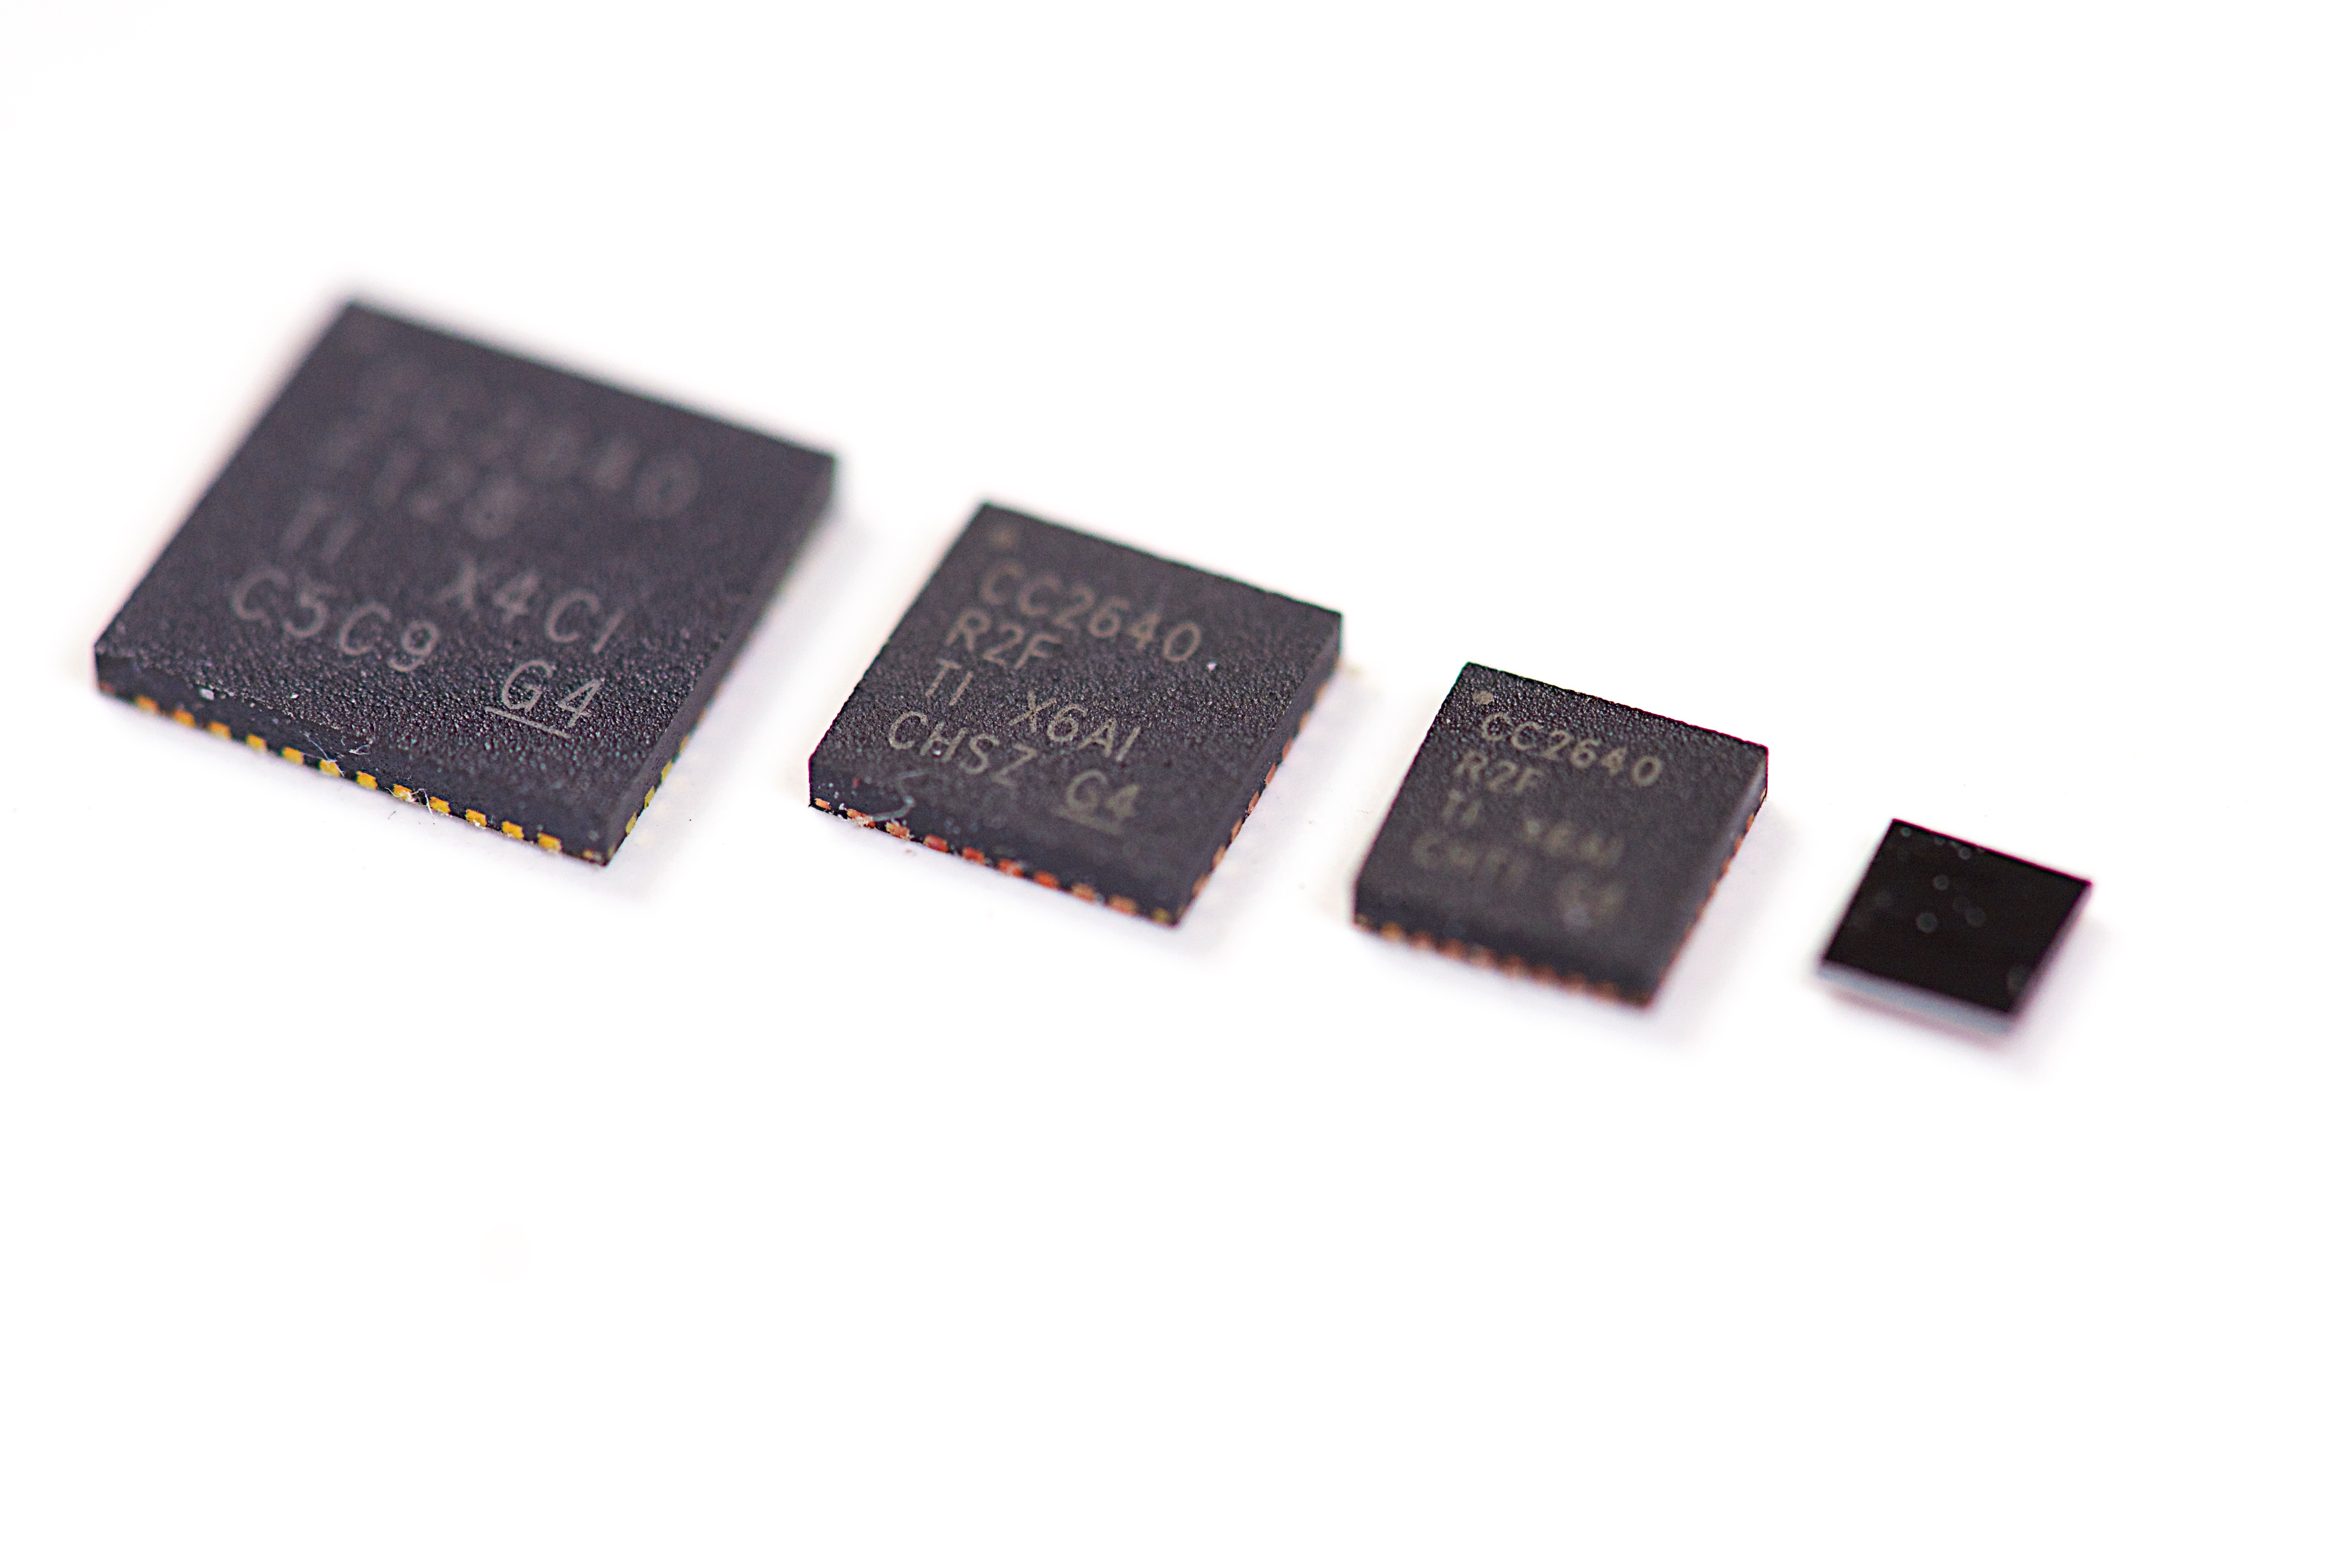 The Secret To Moving Faster With Bluetooth 5 Connecting Highspeed Amplifier Circuits Analog Wire Blogs Ti E2e Community Figure 1 Package Sizes For Cc2640r2f Wireless Mcu